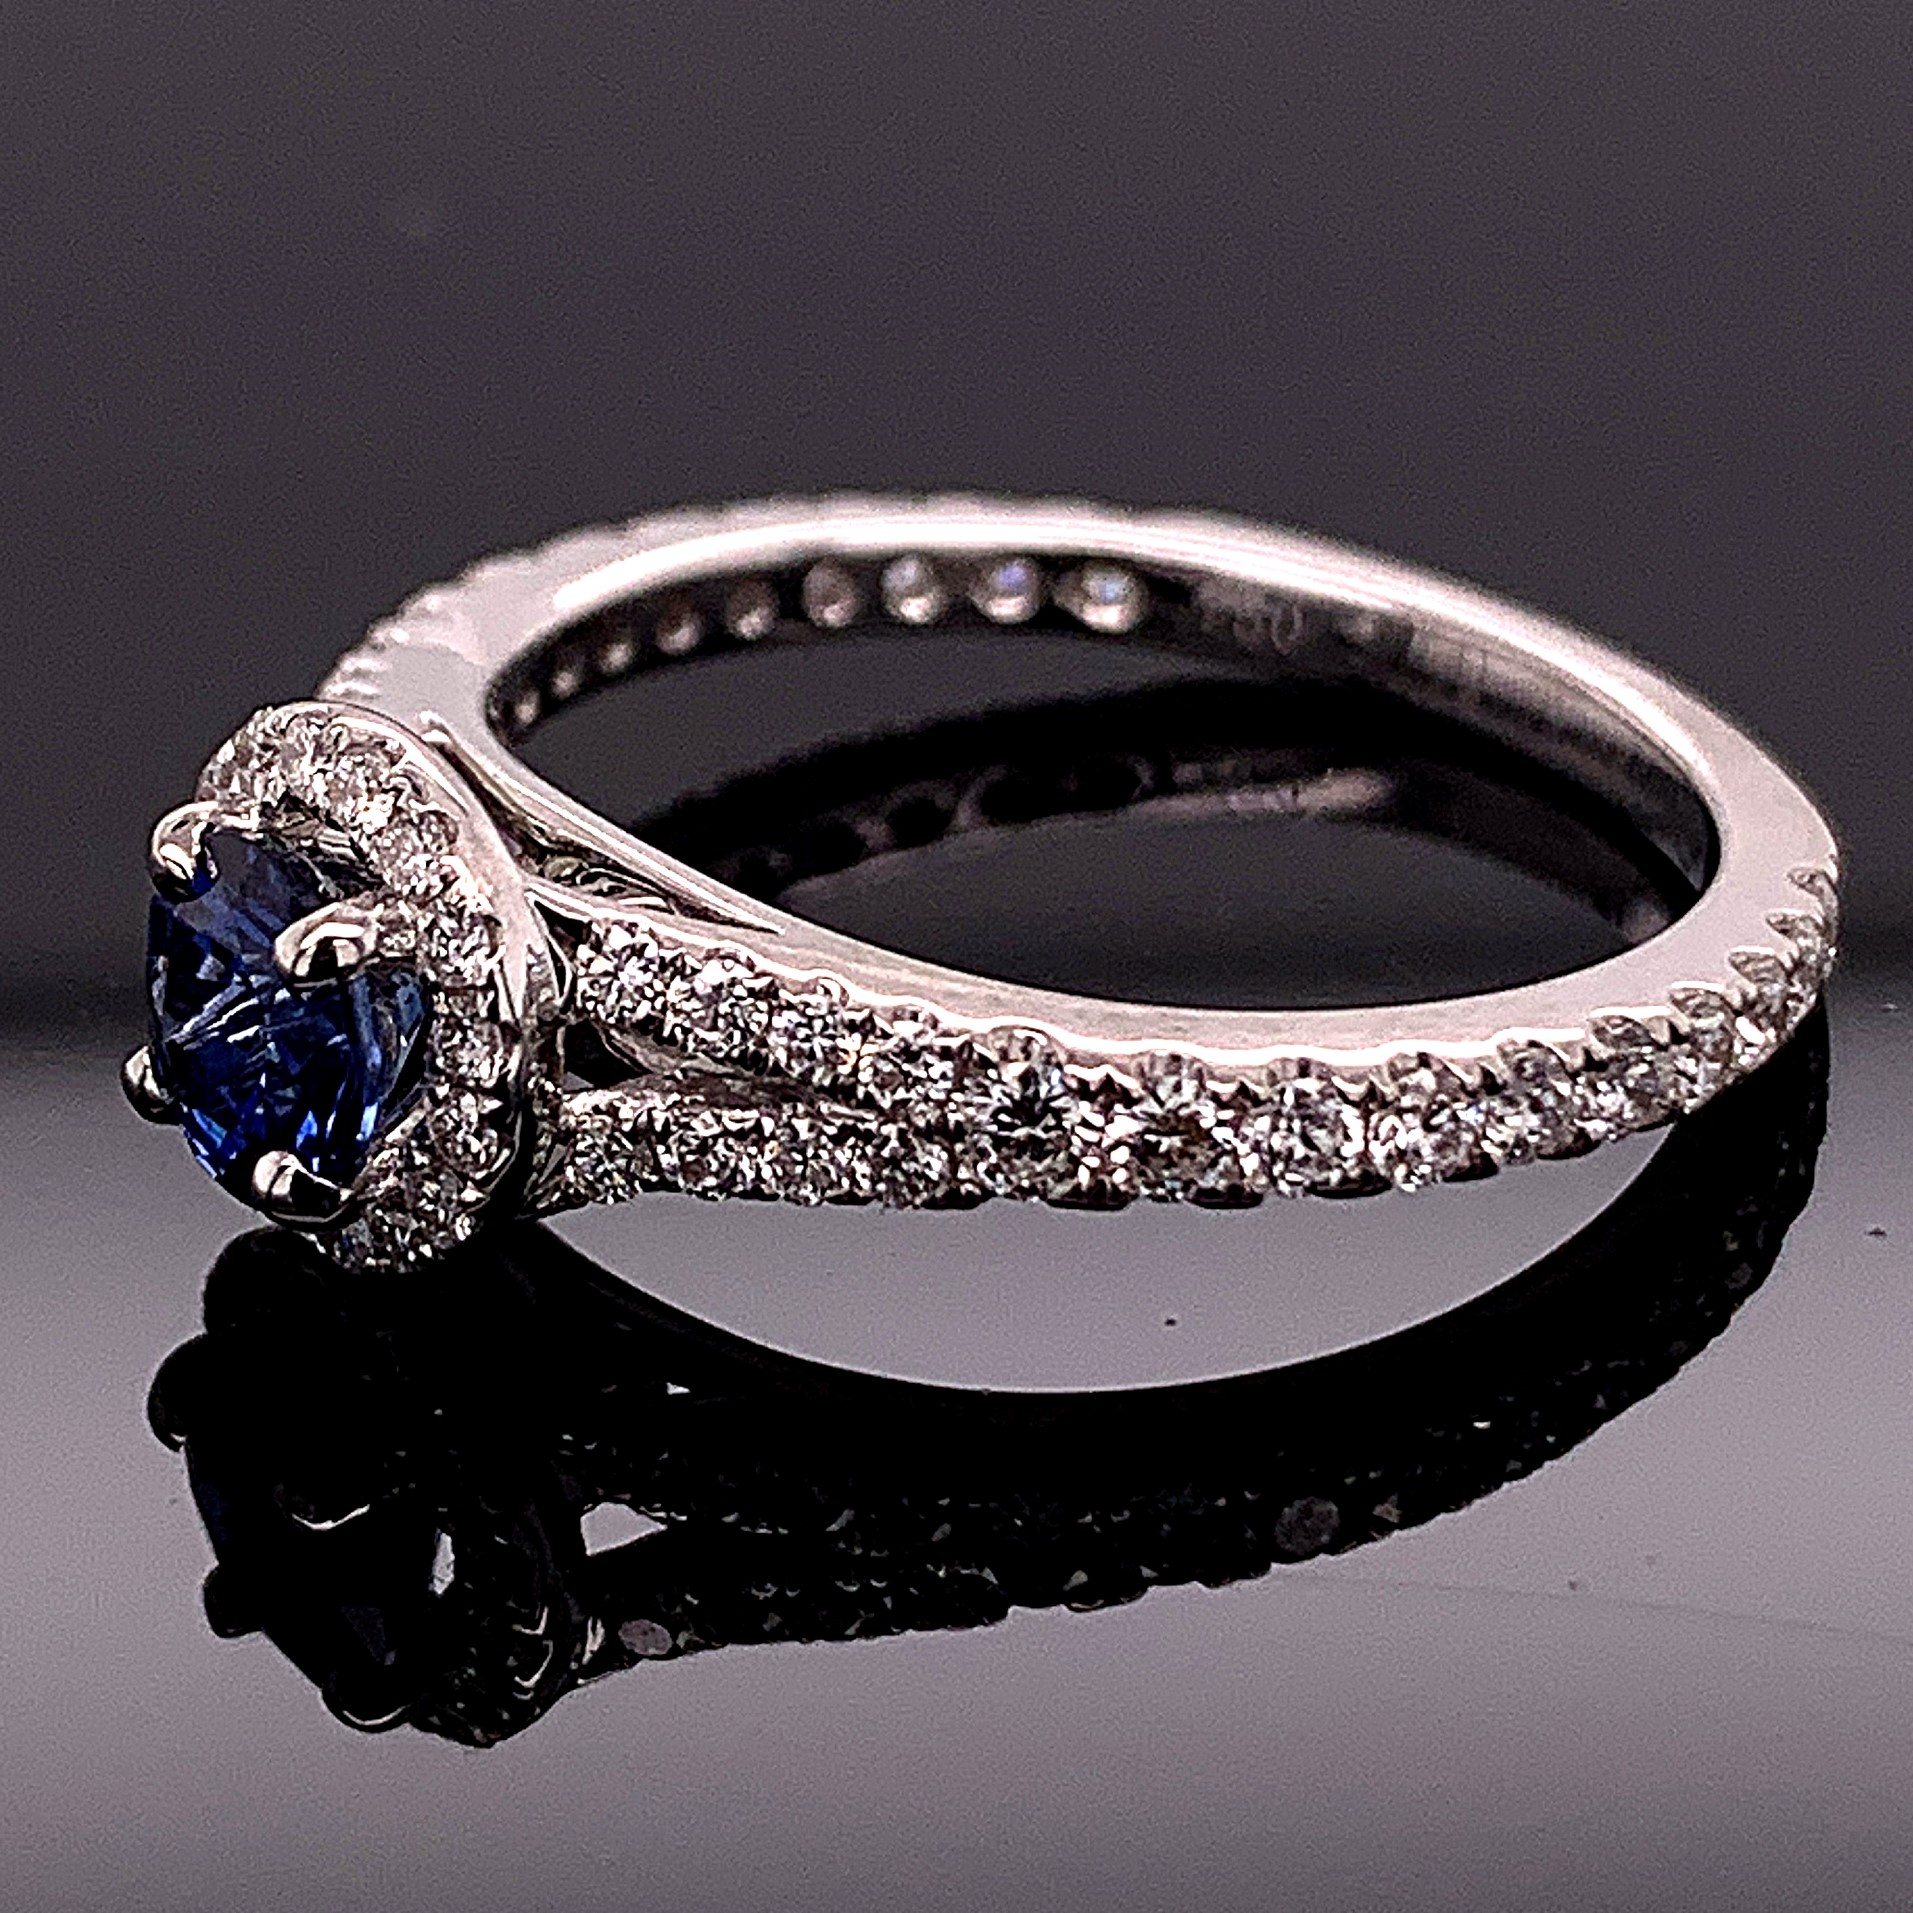 Women's Colored Stone Rings - Blue Sapphire And Diamond Ring - image #2